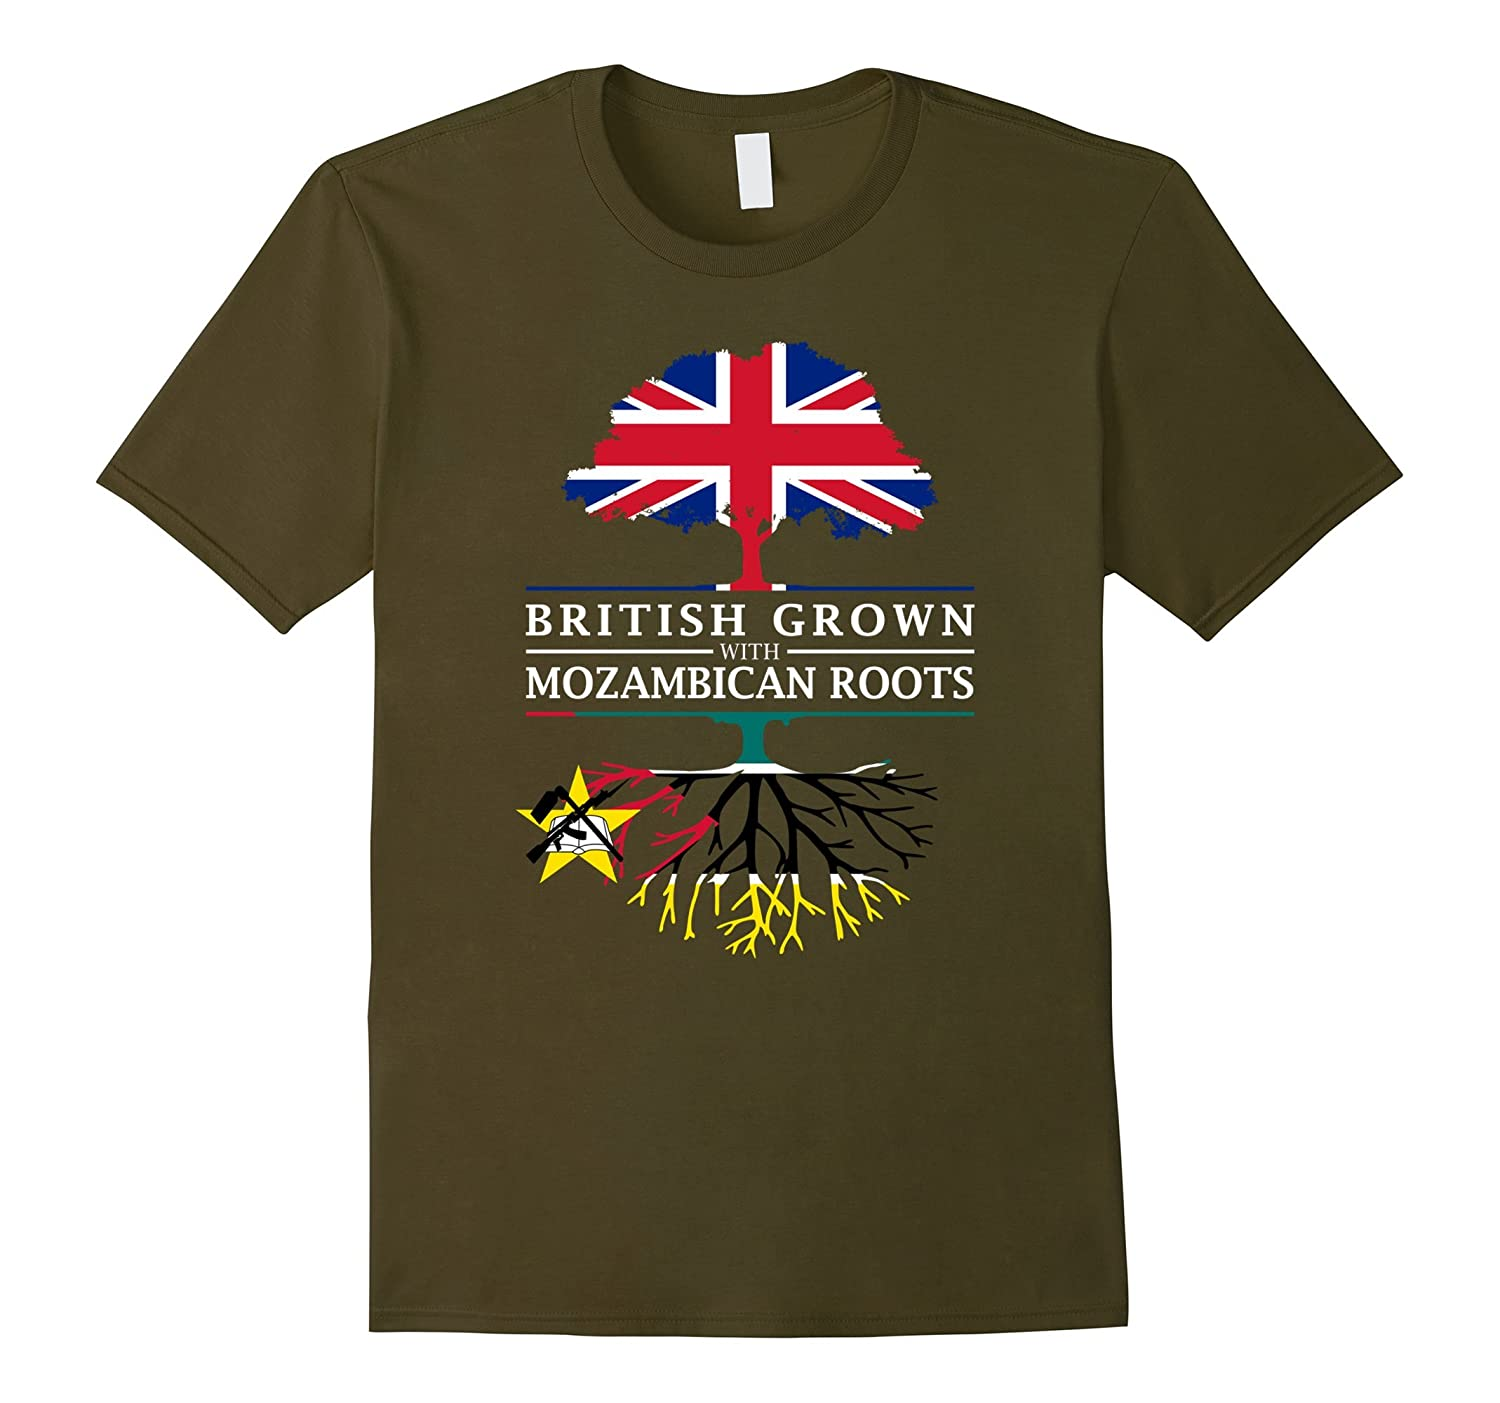 British Grown with Mozambican Roots - Mozambique T-Shirt-CD